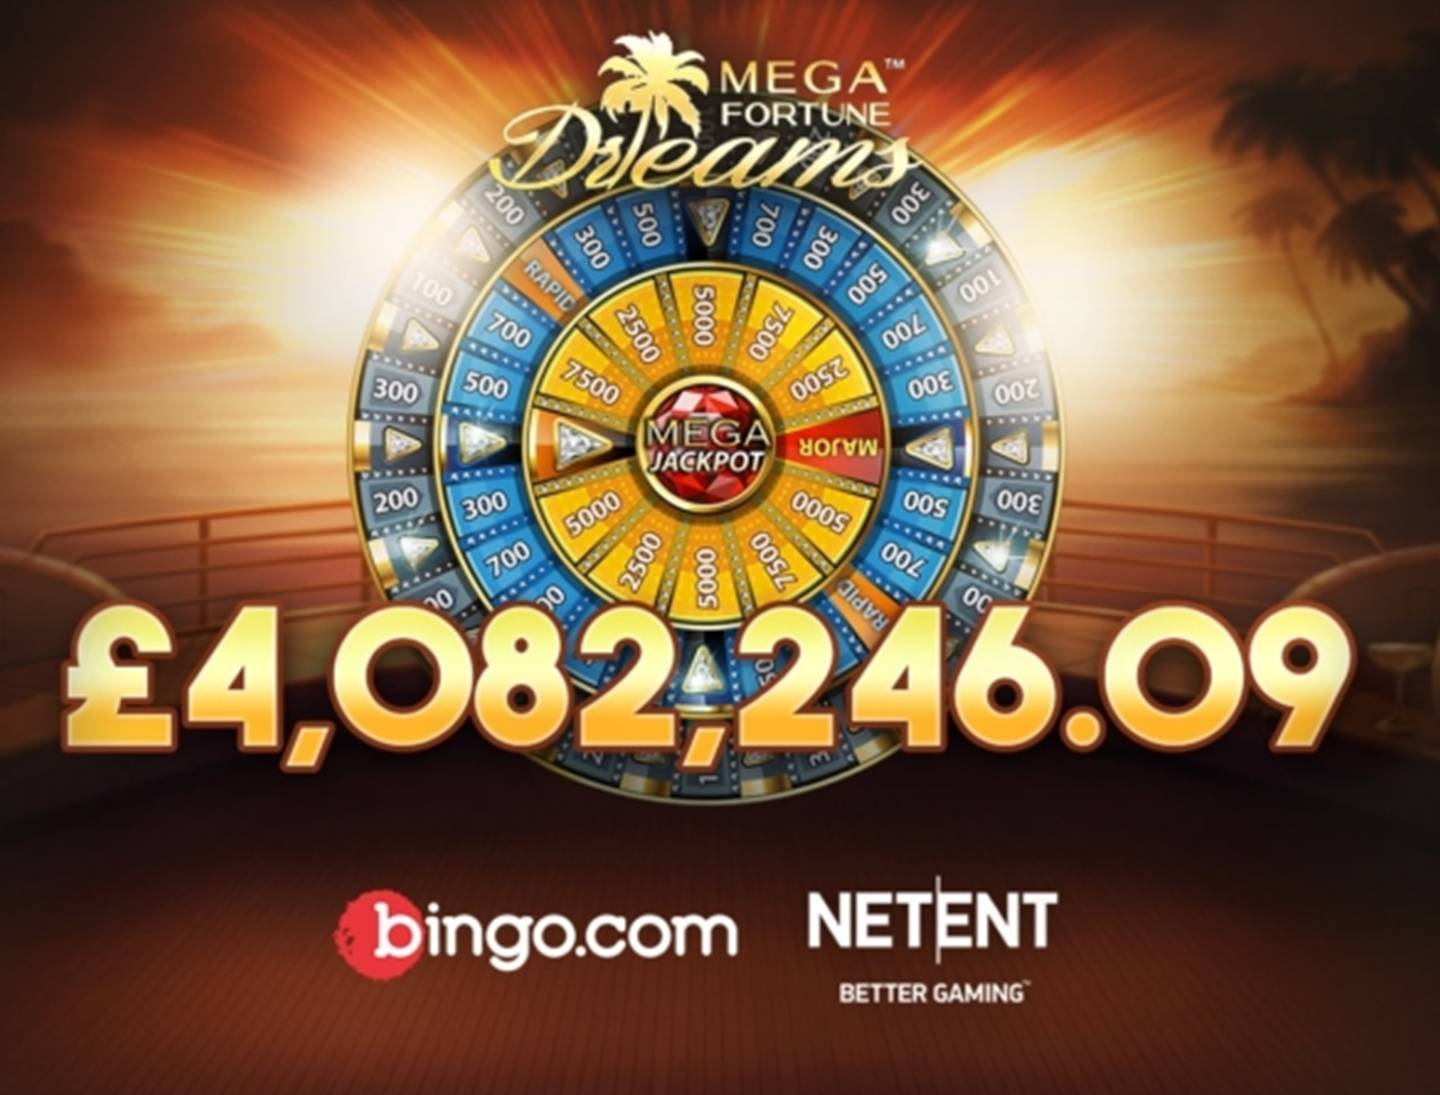 Sleepiness Proved To Be Worthy As This Player Bagged A Cash Of 4m Pounds From Mega Fortune Dreams